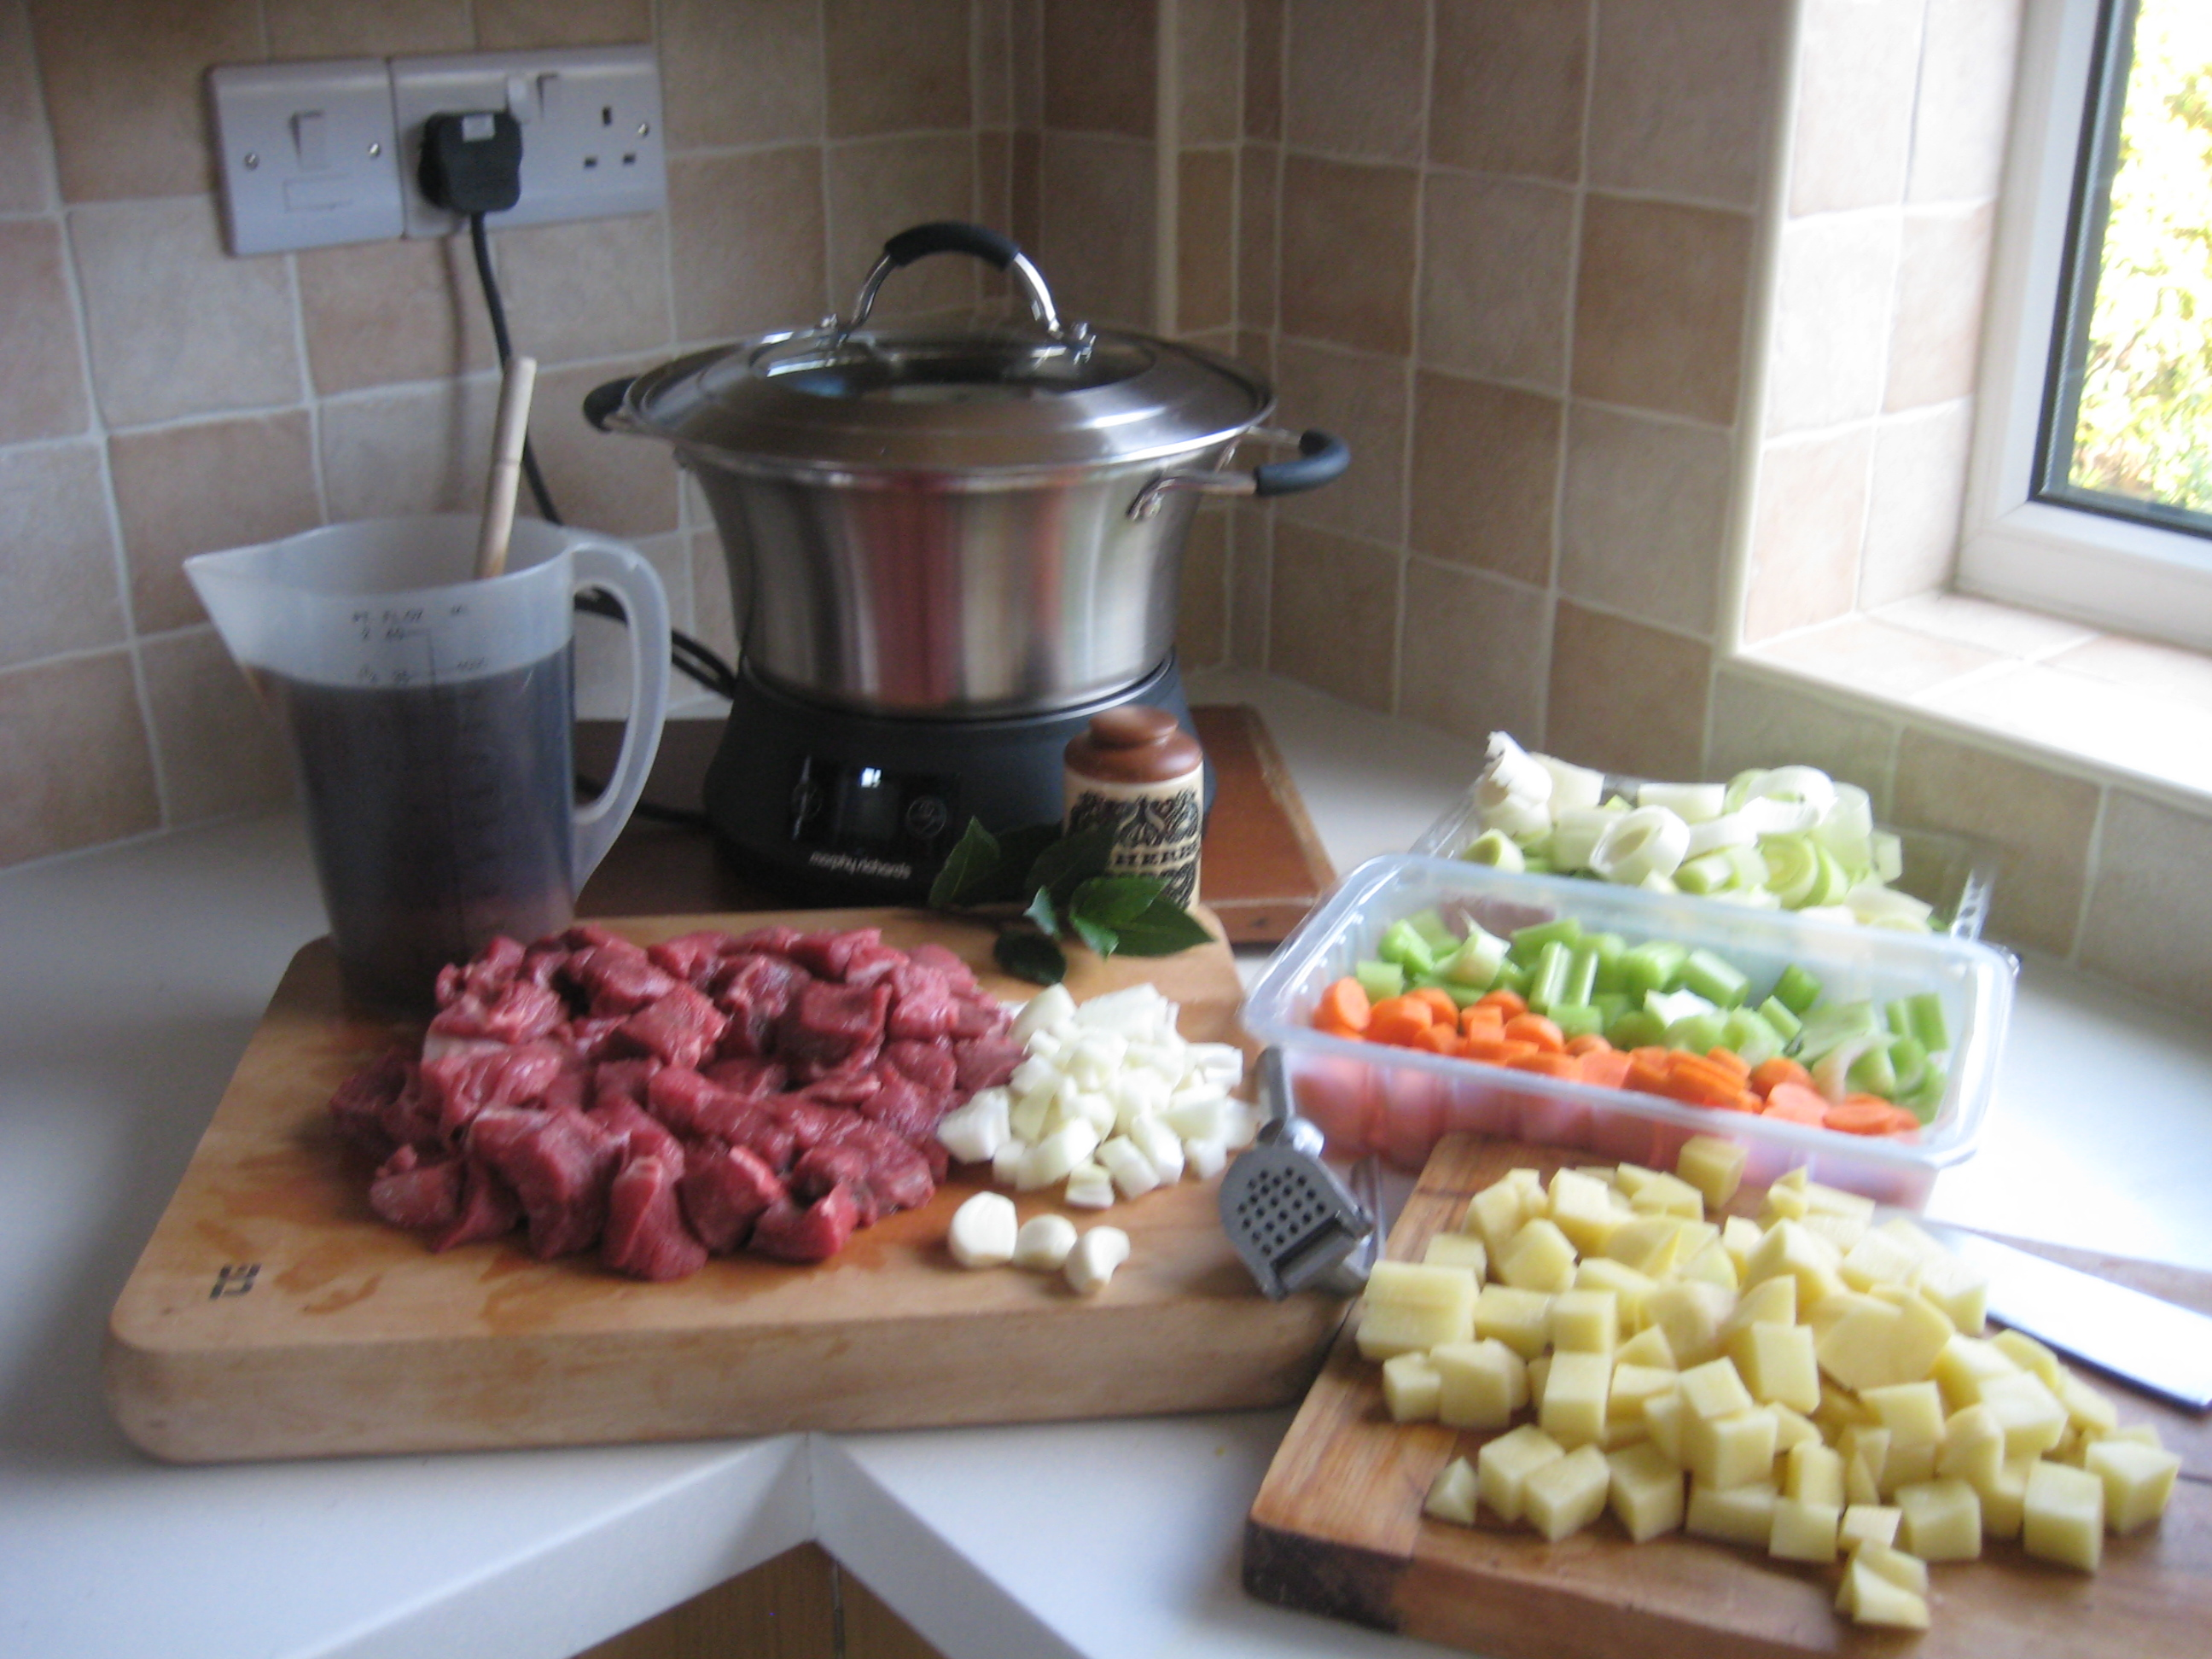 Ingredients for beef casserole using slow cooker